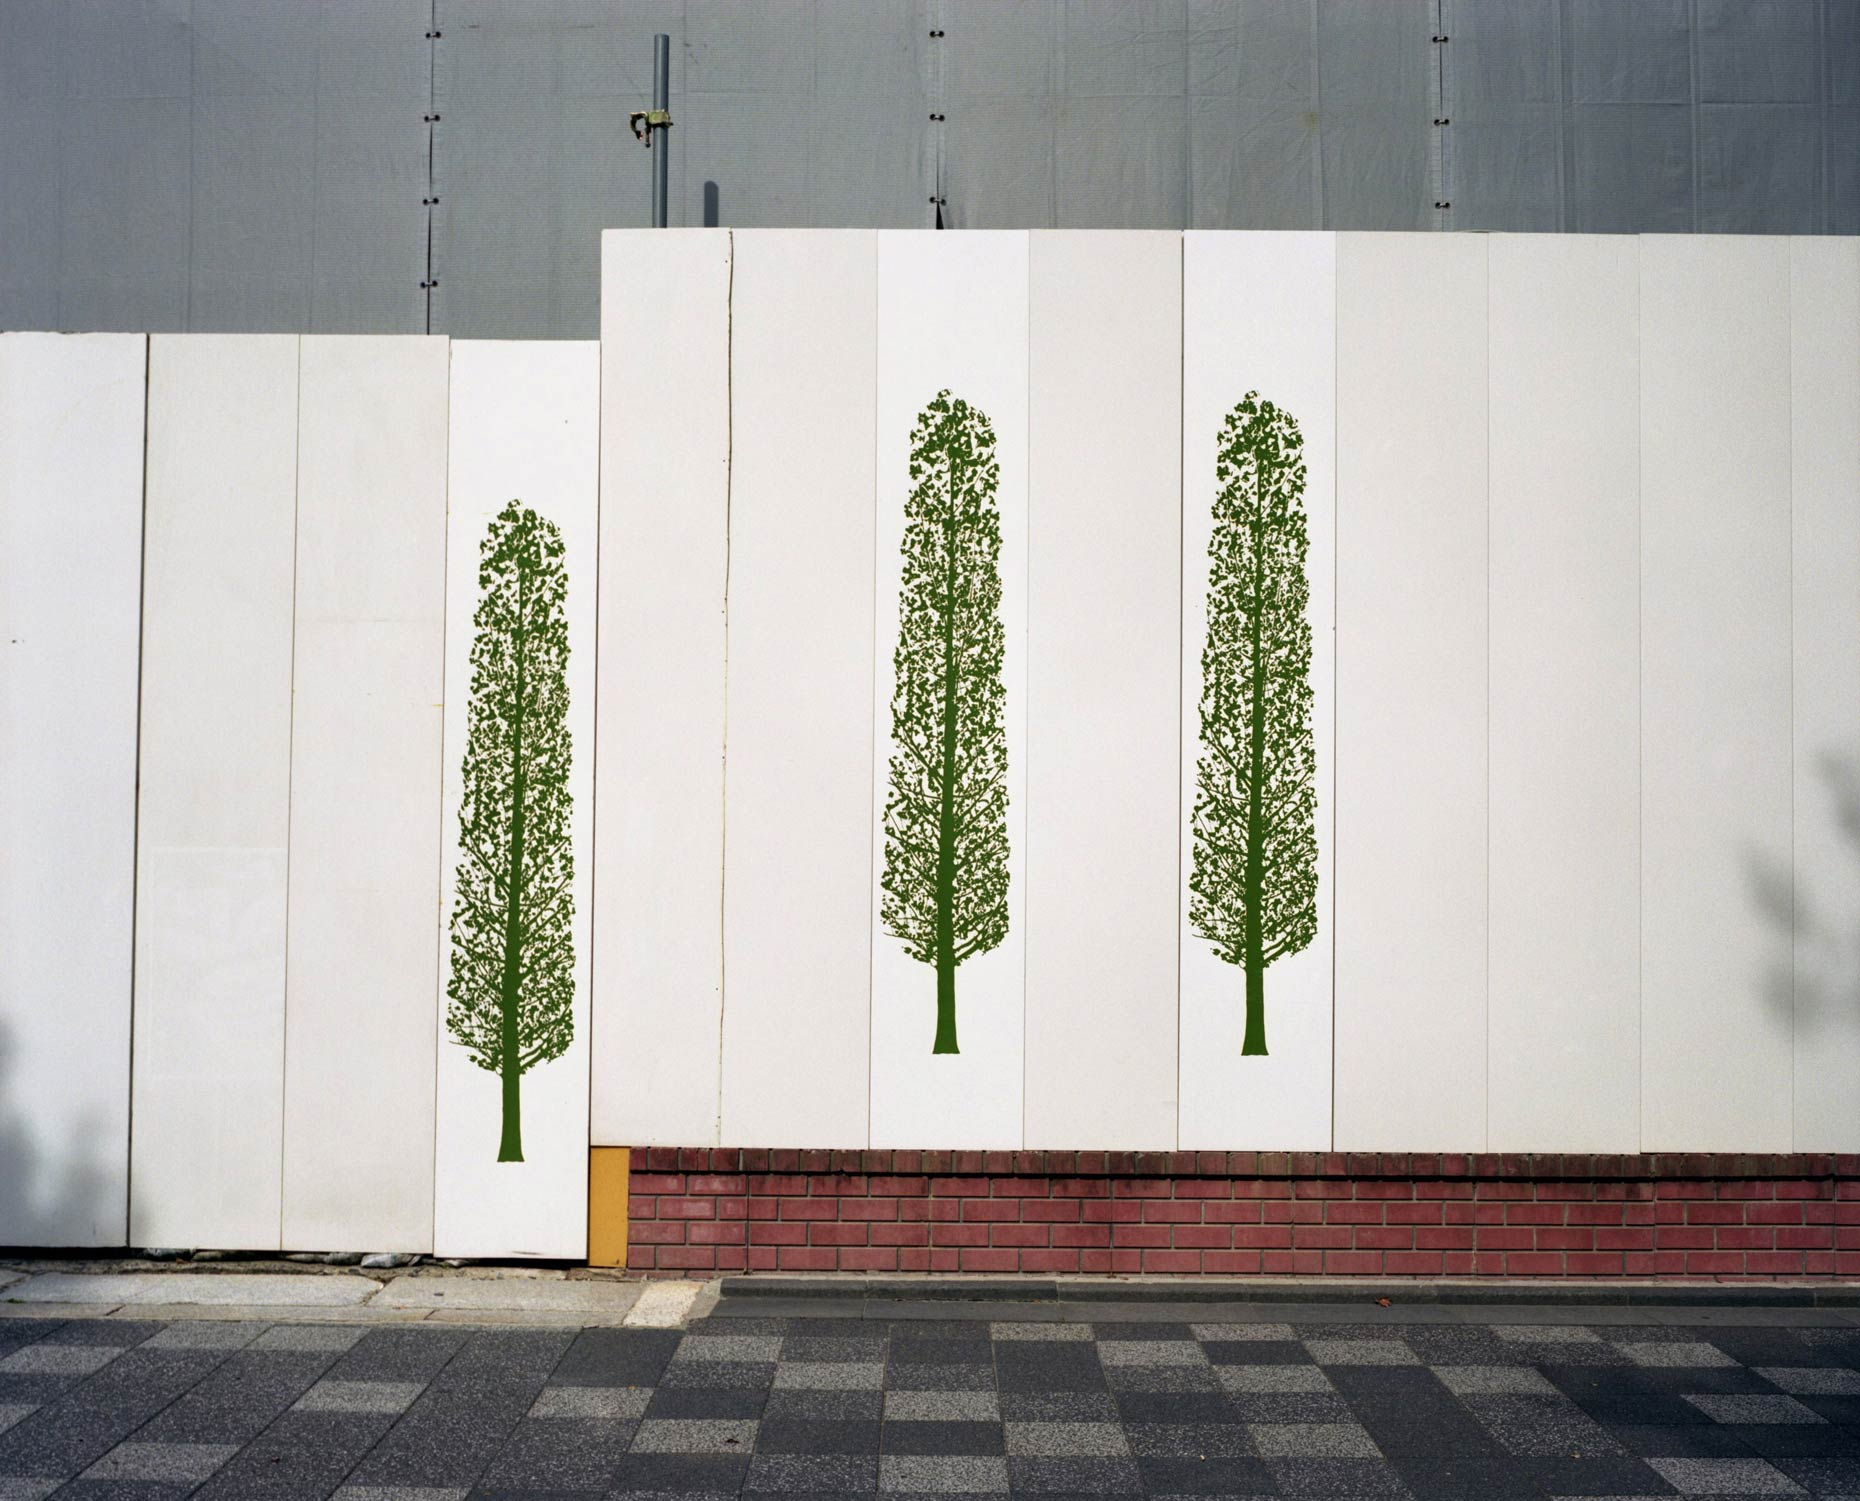 Billboards depicting trees and nature, Tokyo, Japan.